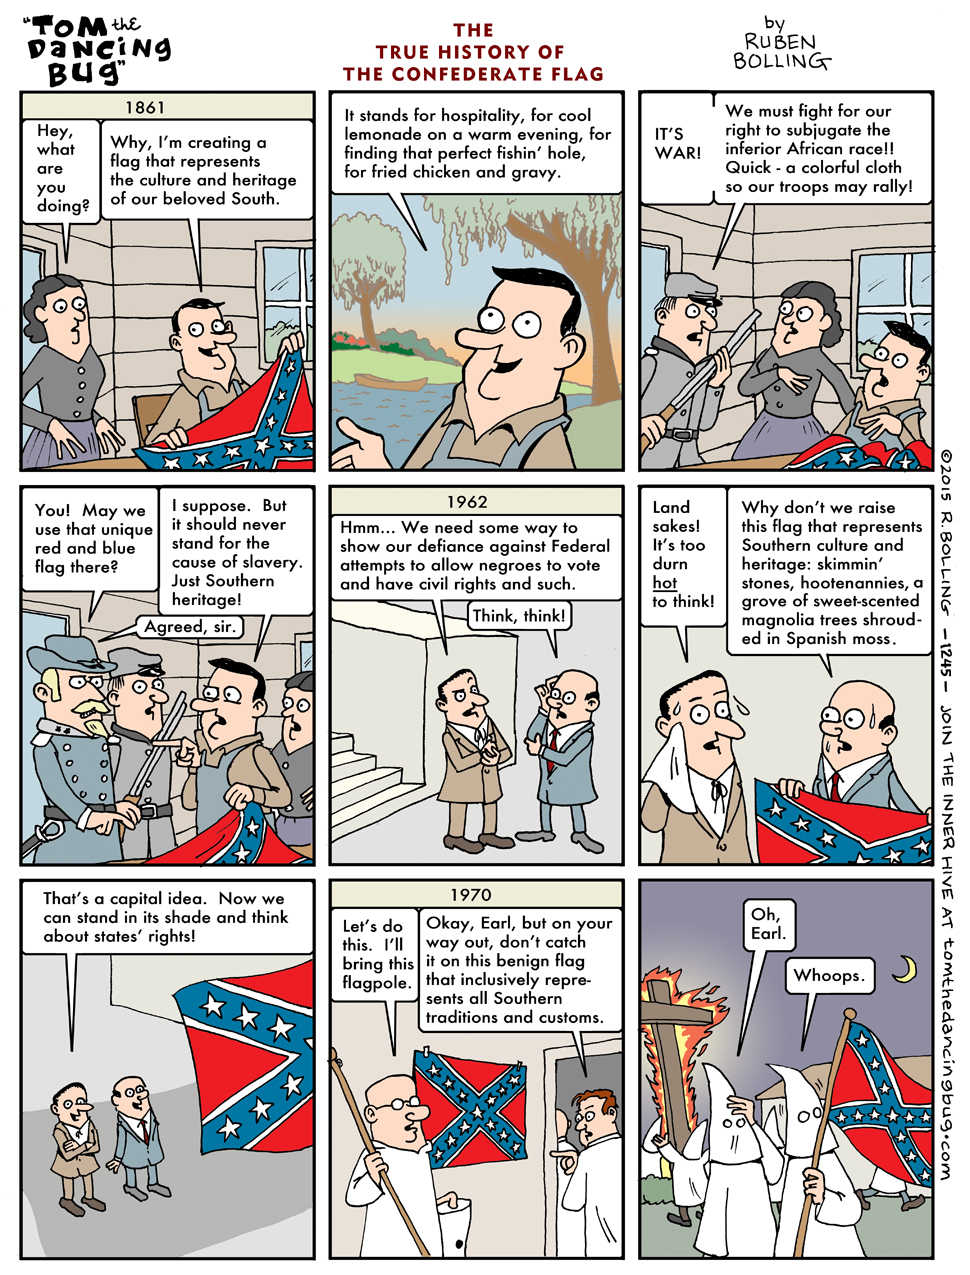 The true history of the confederate flag the confederate flag the true history of the confederate flag ruben dancing bug bolling 1861 we must fight for biocorpaavc